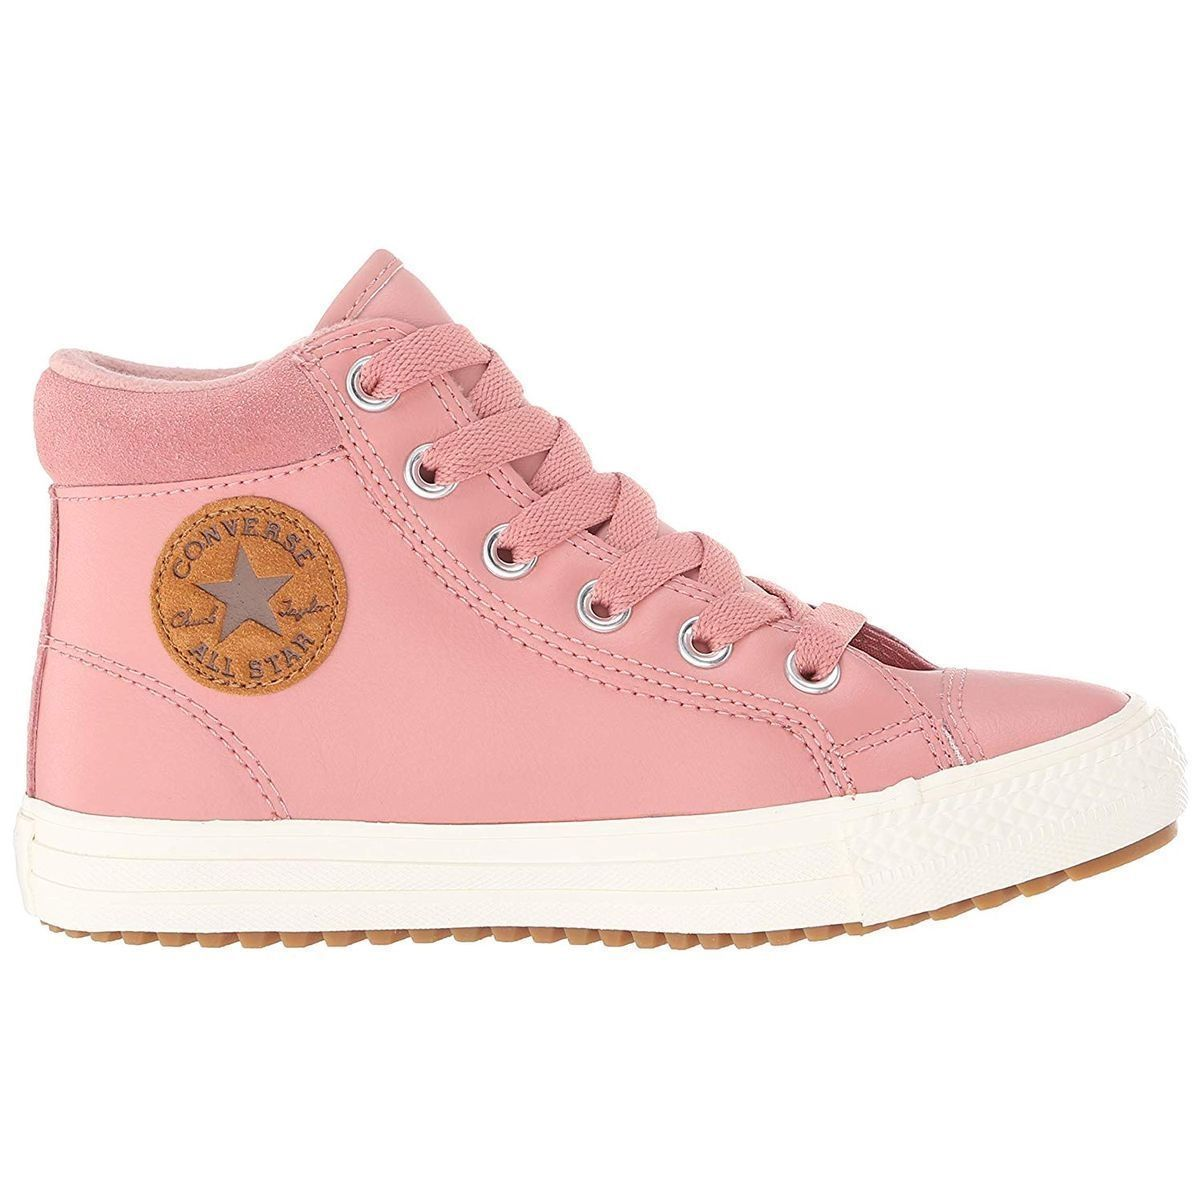 DA.-SNEAKER CHUCK TAYLOR ALL STAR PC BOOT - HI:ROSE/CUIR/TEXTILE/CAOUTCHOUC/Rose